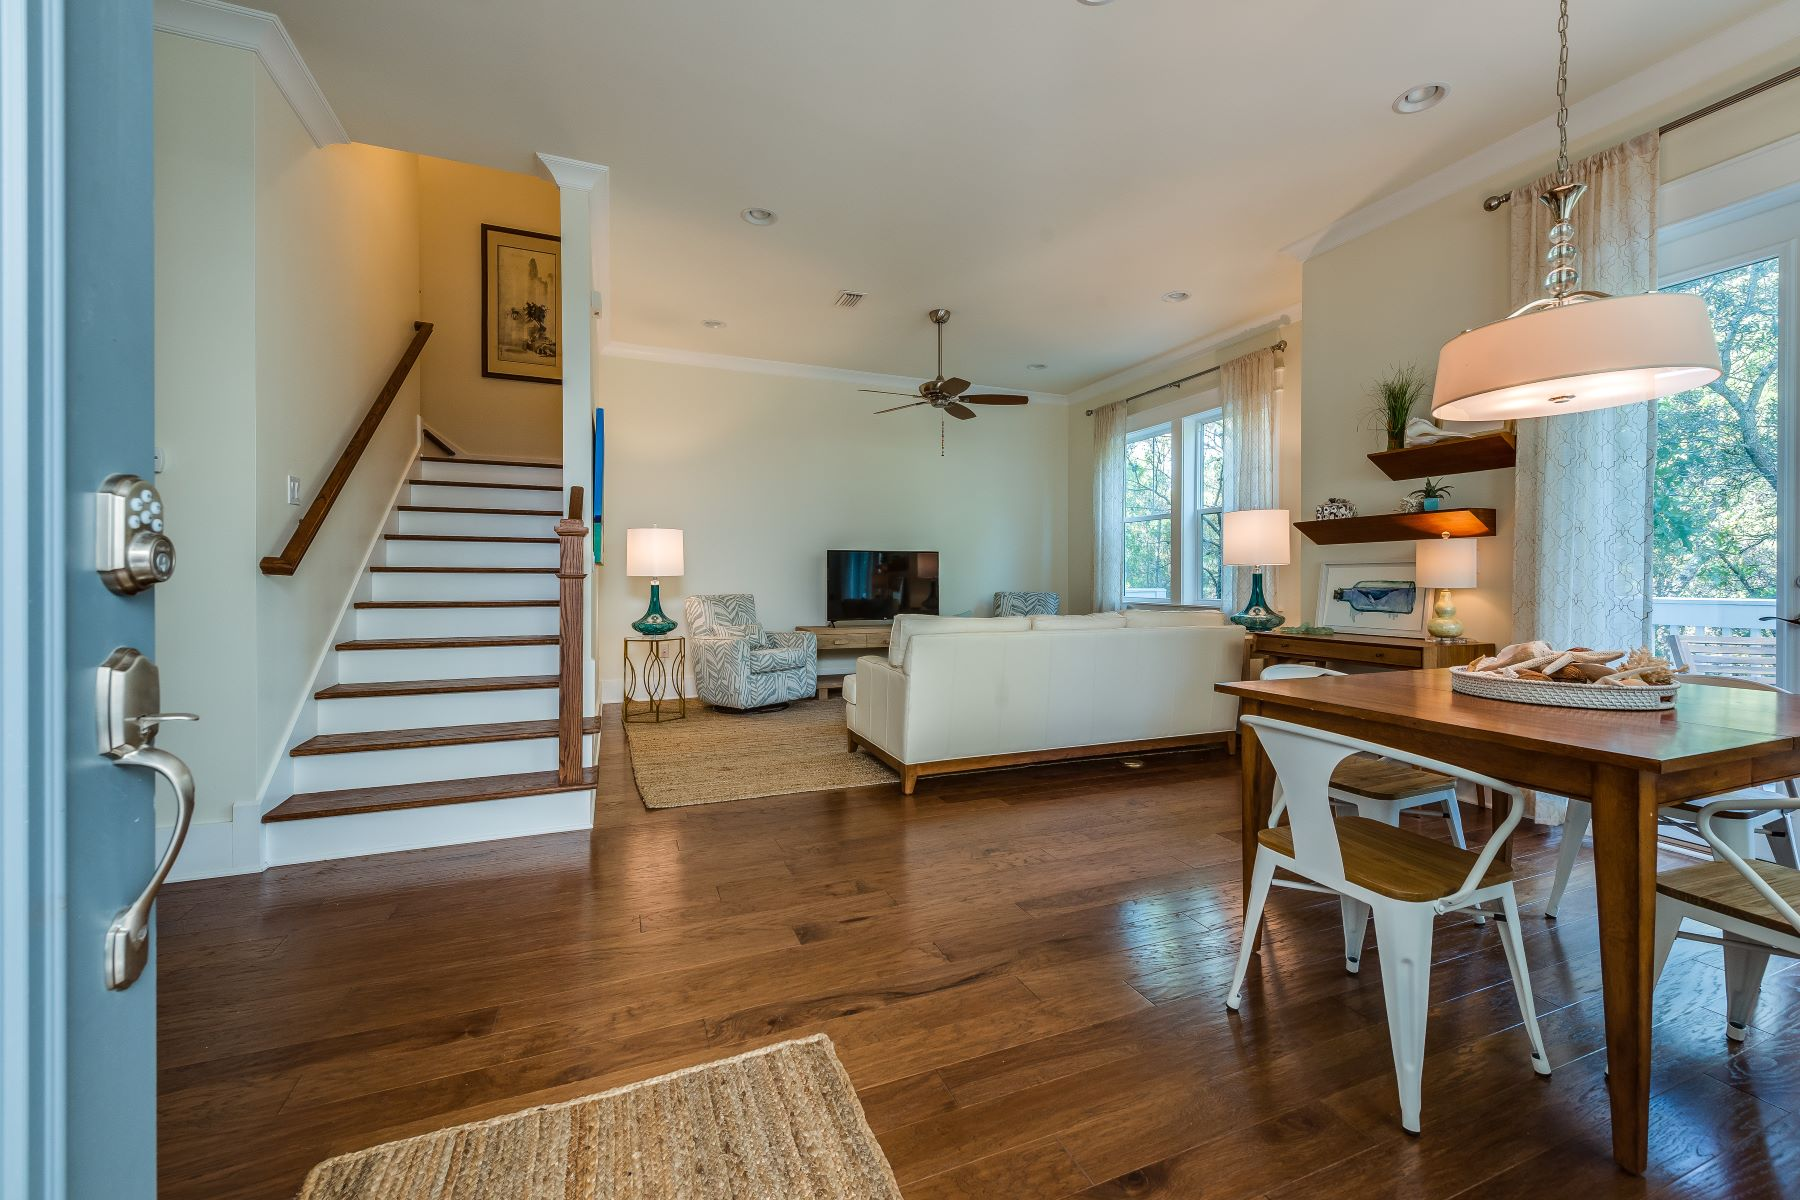 Single Family Homes por un Venta en Charming Townhome in Inlet Beach with Community Amenities 167 Milestone Drive Unit B, Inlet Beach, Florida 32461 Estados Unidos